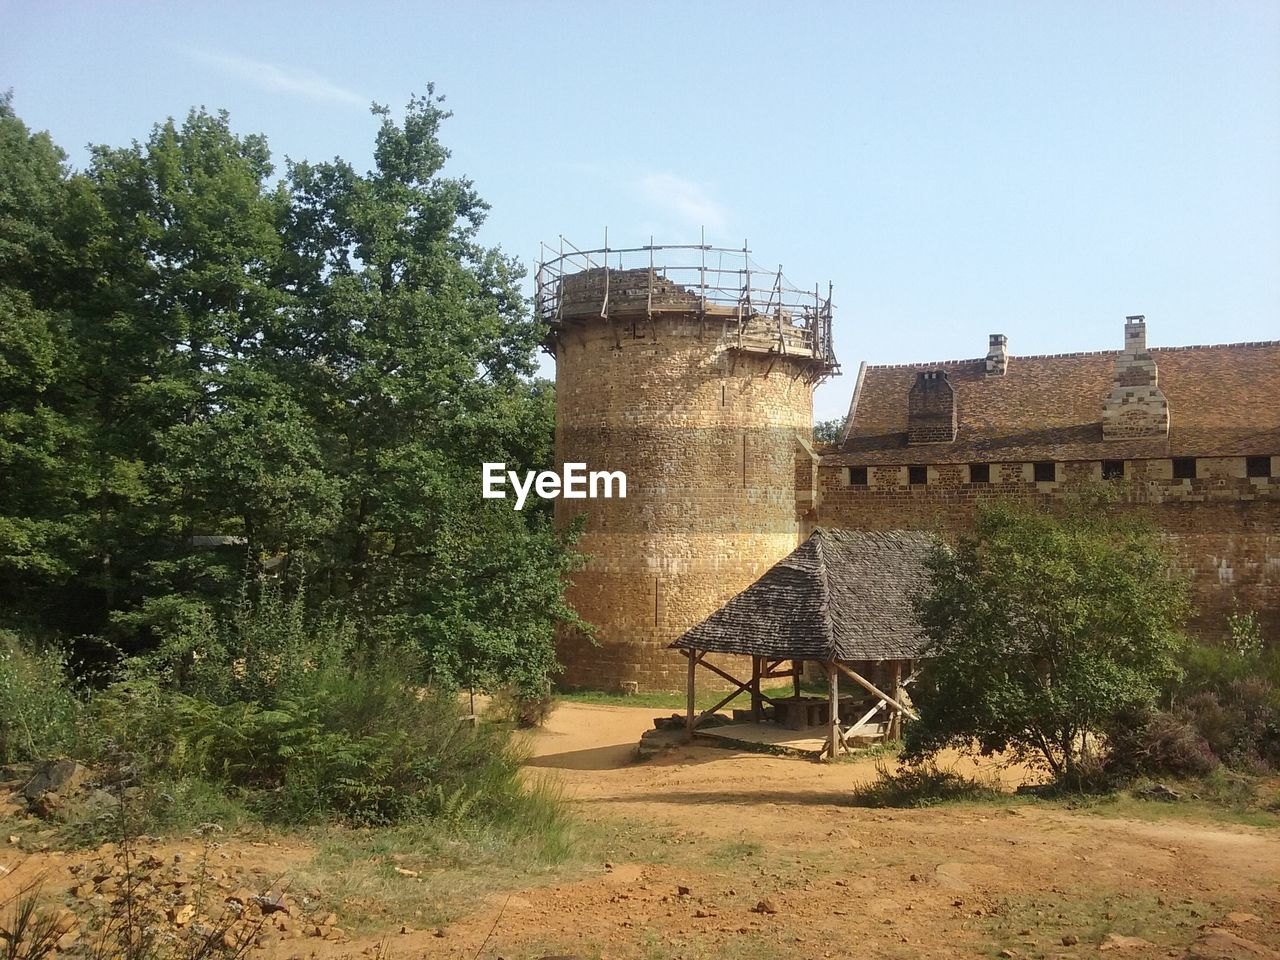 architecture, tree, built structure, day, no people, nature, growth, water tower - storage tank, outdoors, building exterior, sky